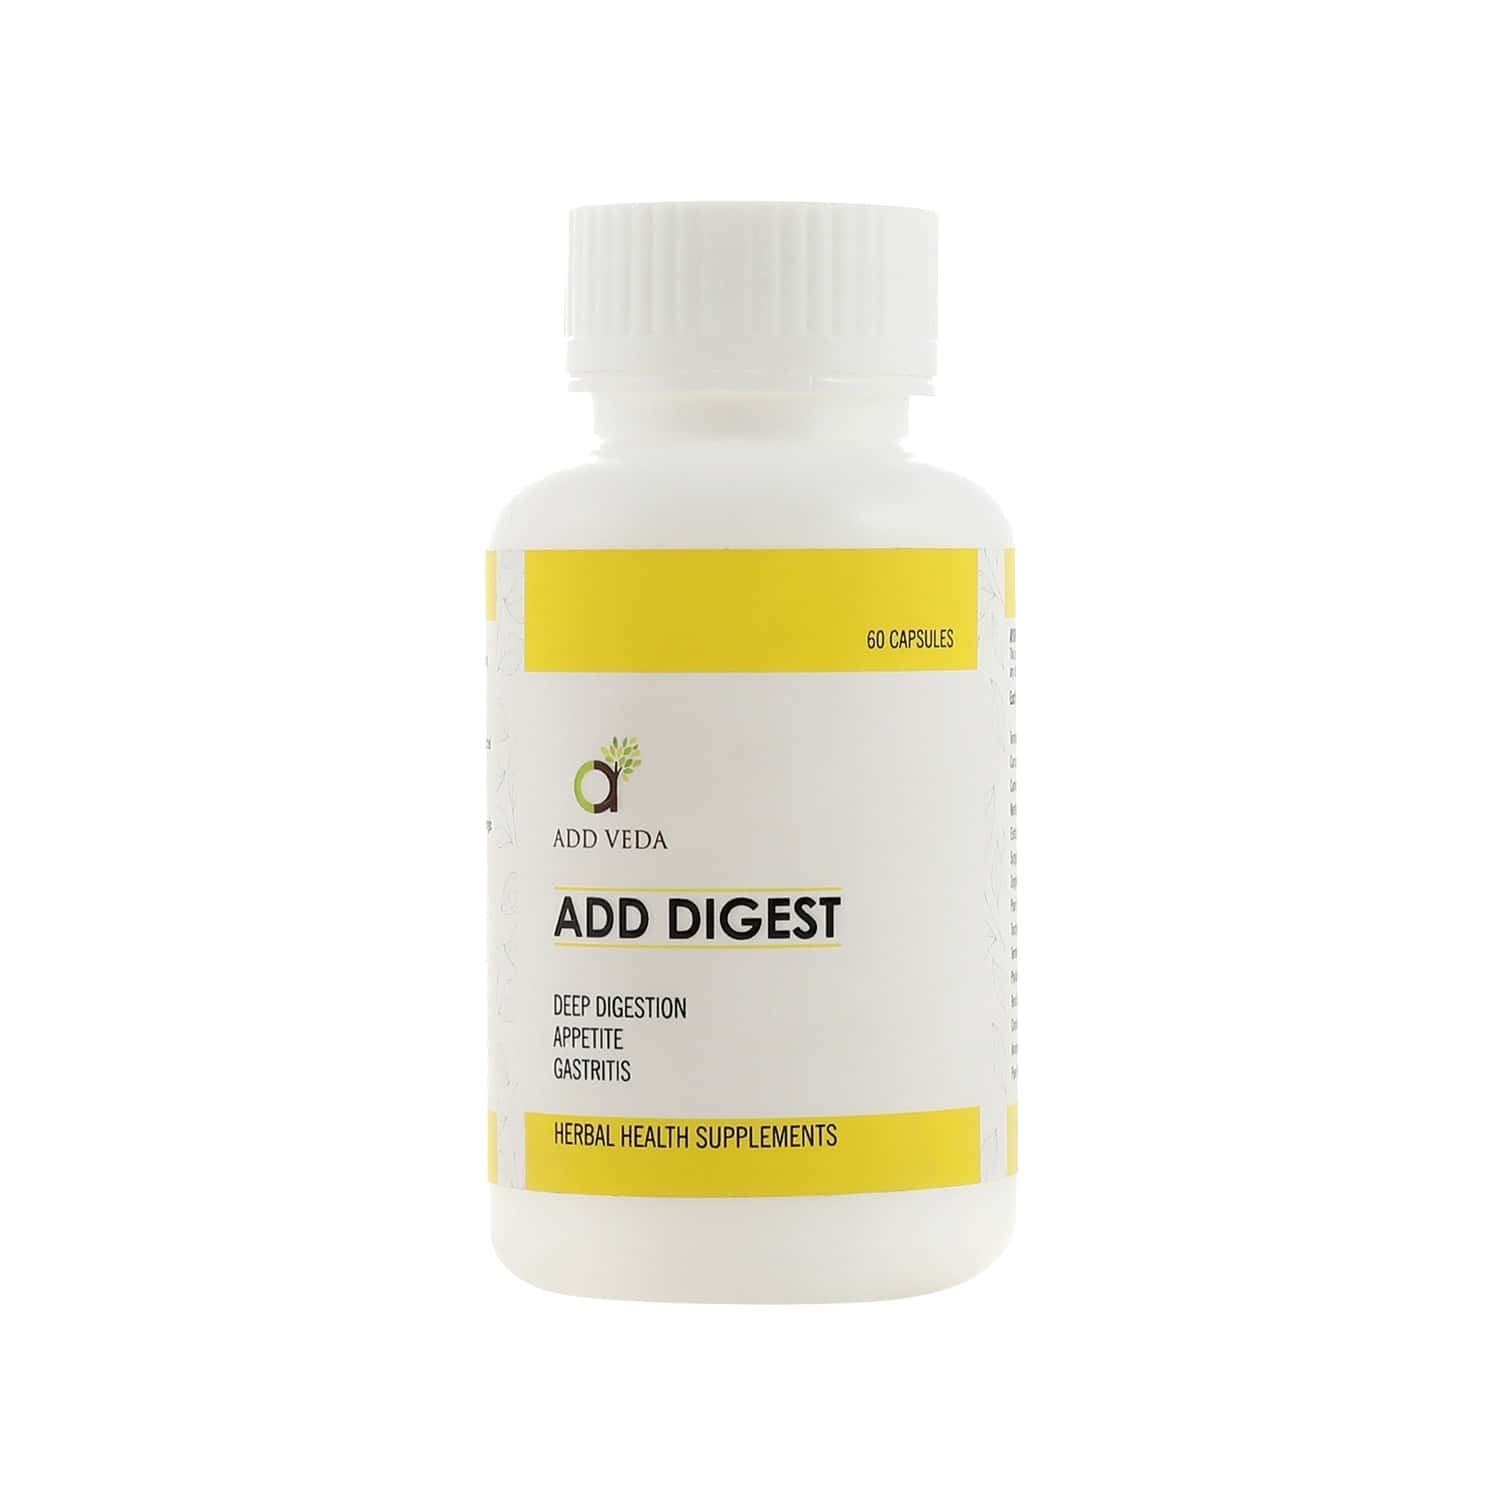 Add Digest - Deep Digestion, Appetite, Gastritis 60 Capsules